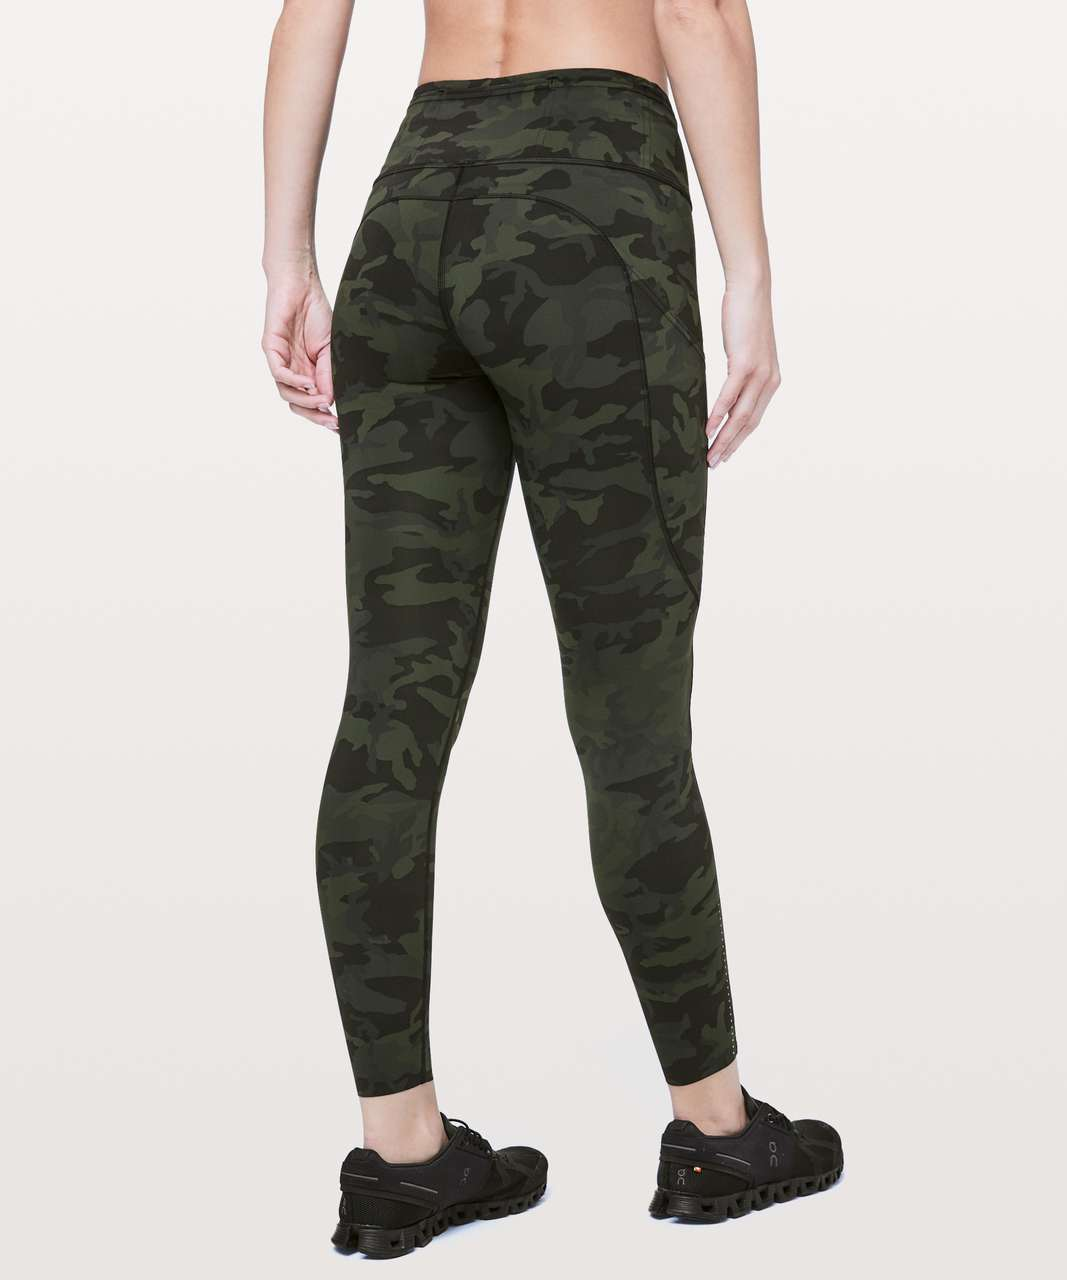 "Lululemon Fast & Free 7/8 Tight II *Nulux 25"" - Incognito Camo Multi Gator Green"